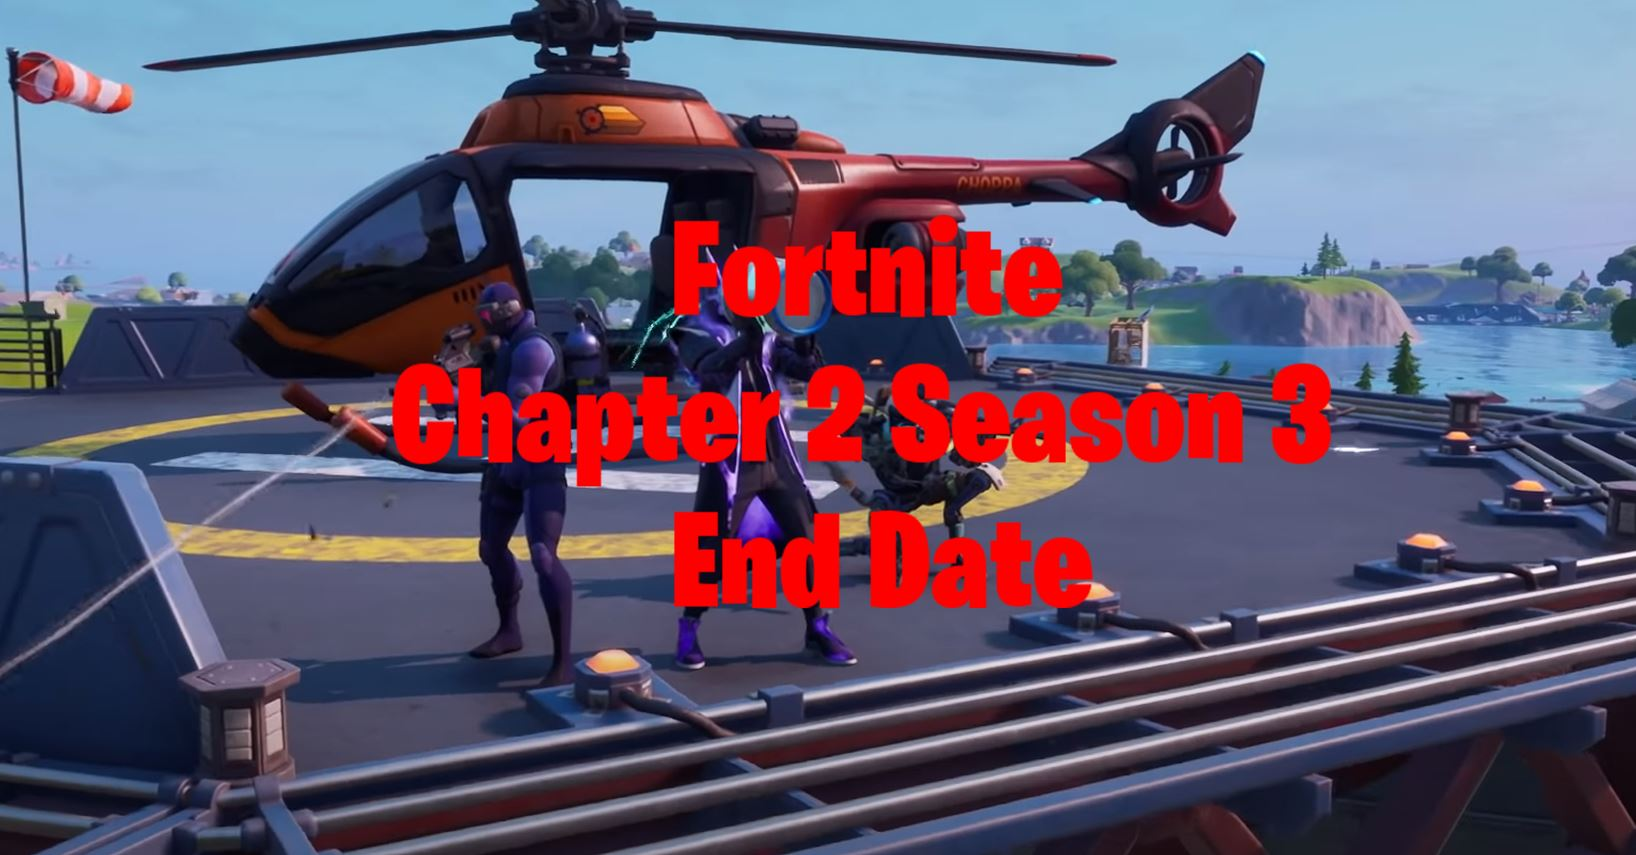 Fortnite items are now cheaper with Epic Direct Payment